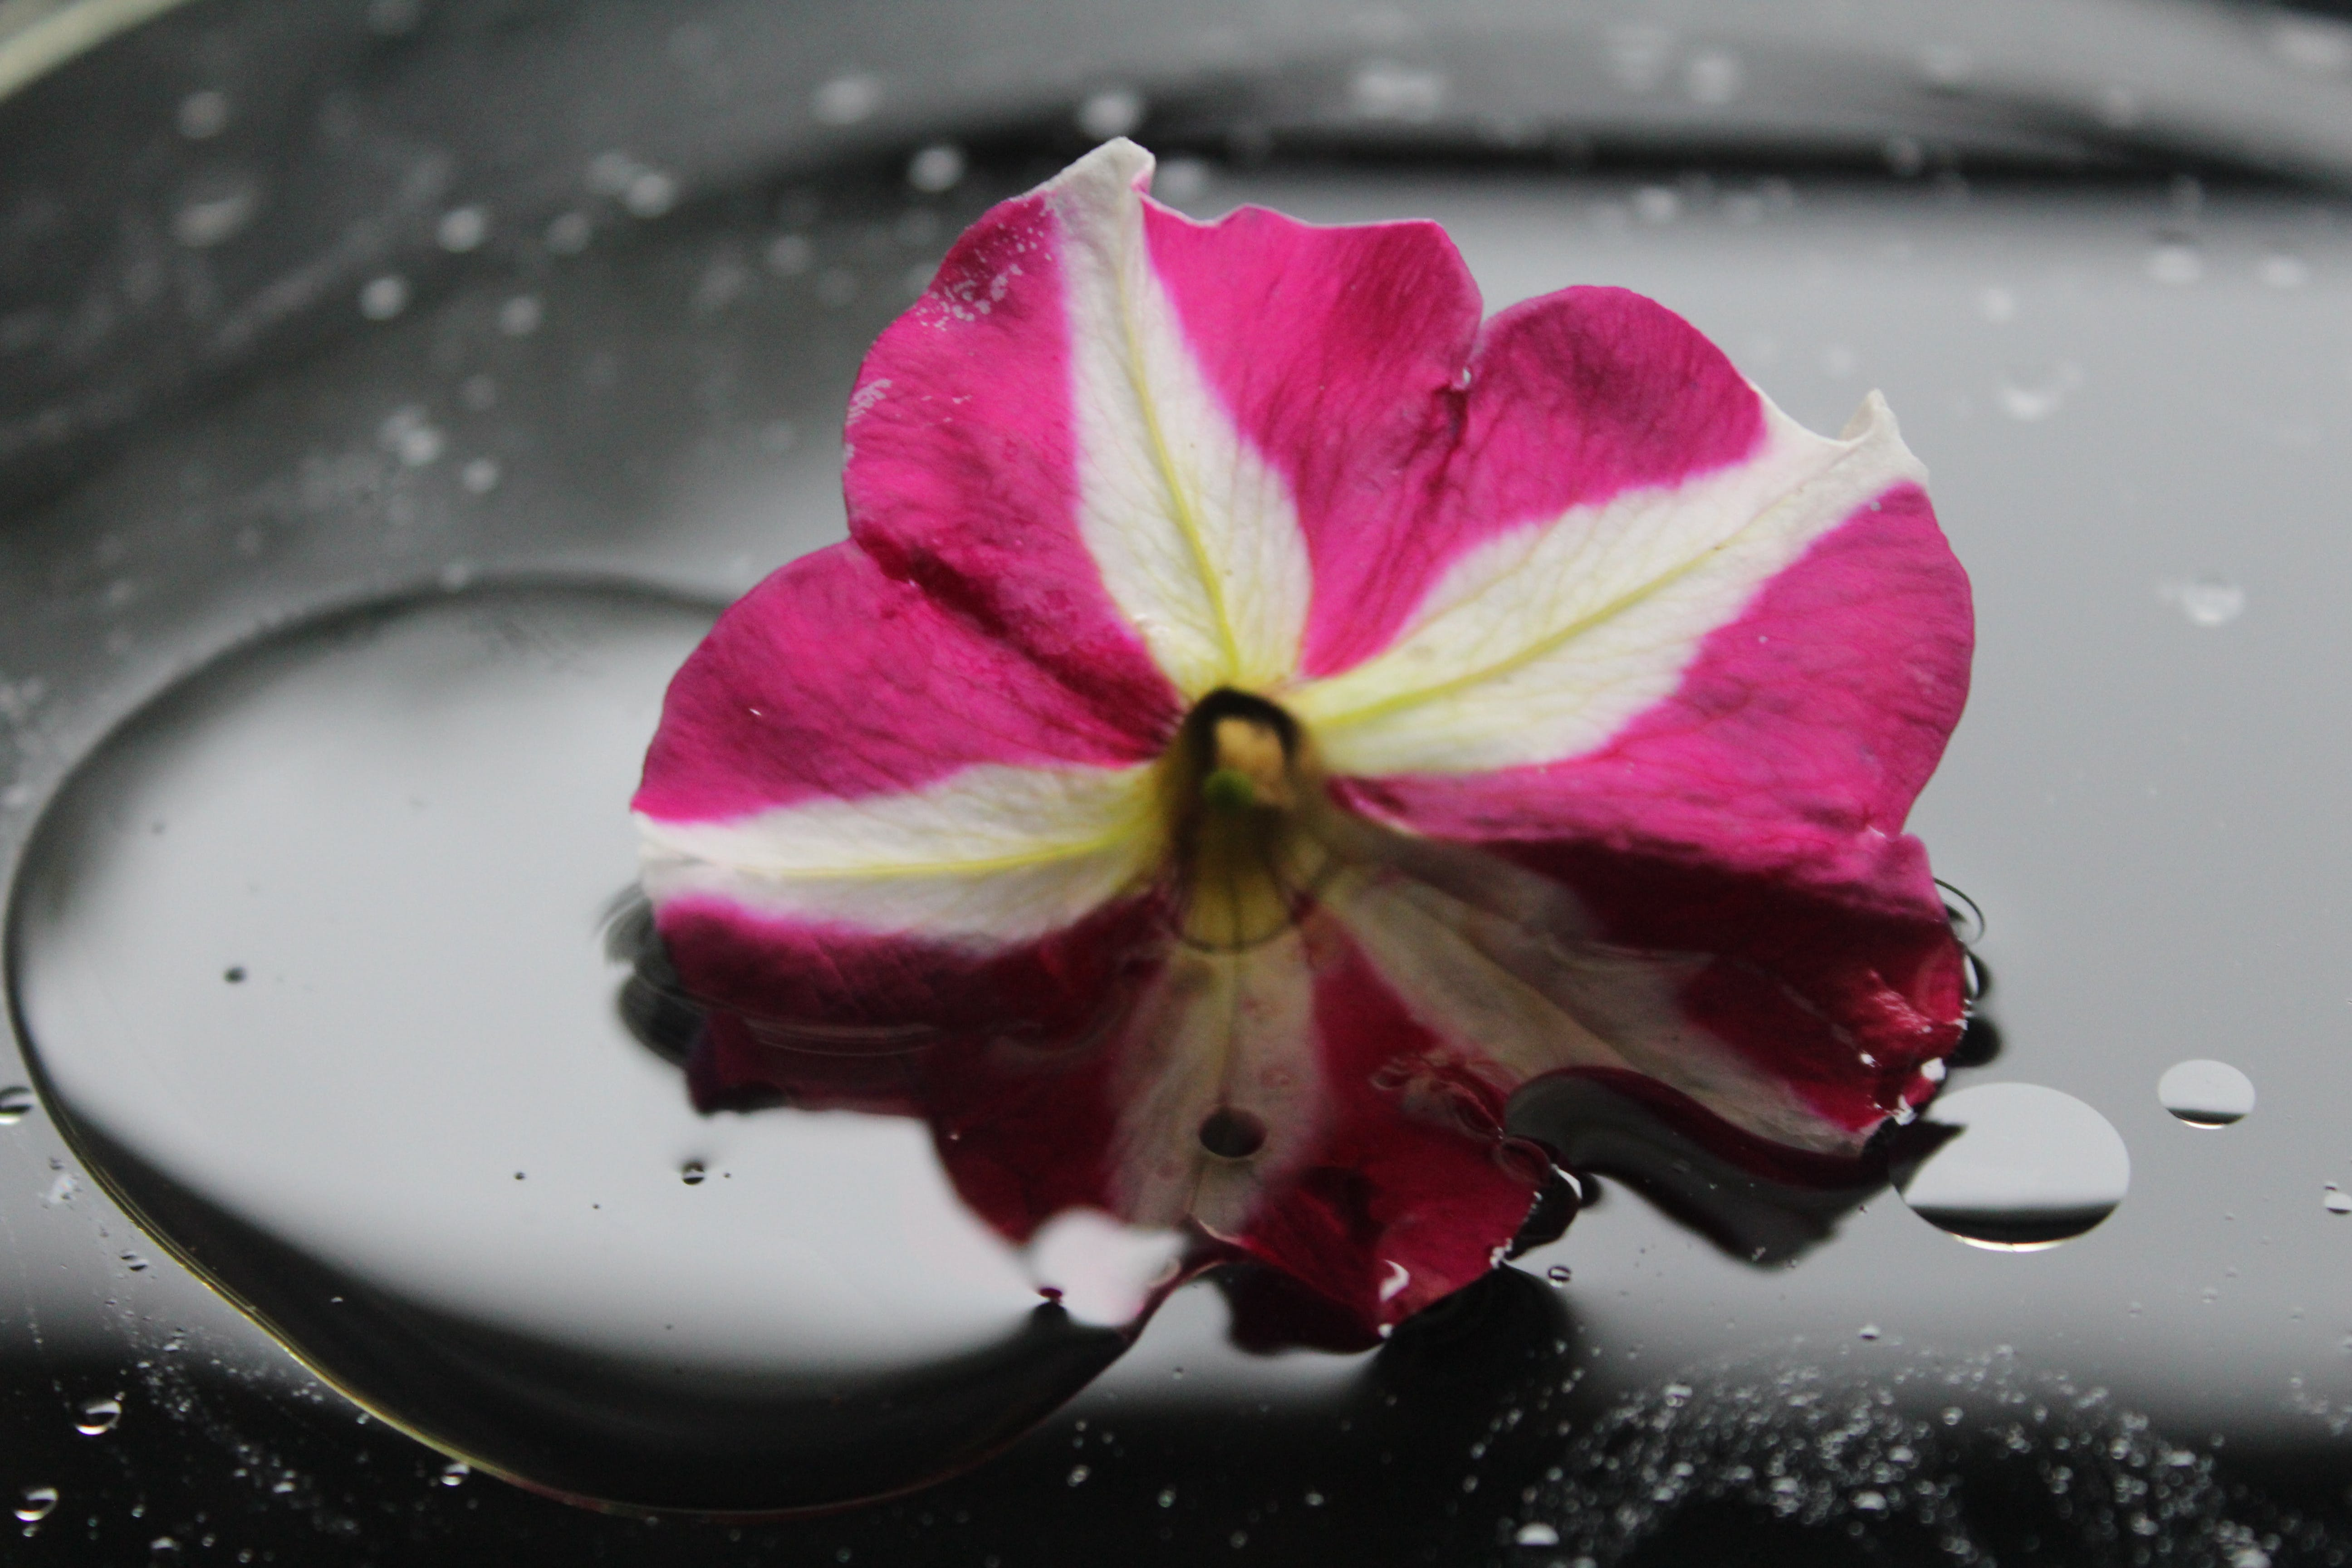 Pink and White Petunia Flower With Water Dew